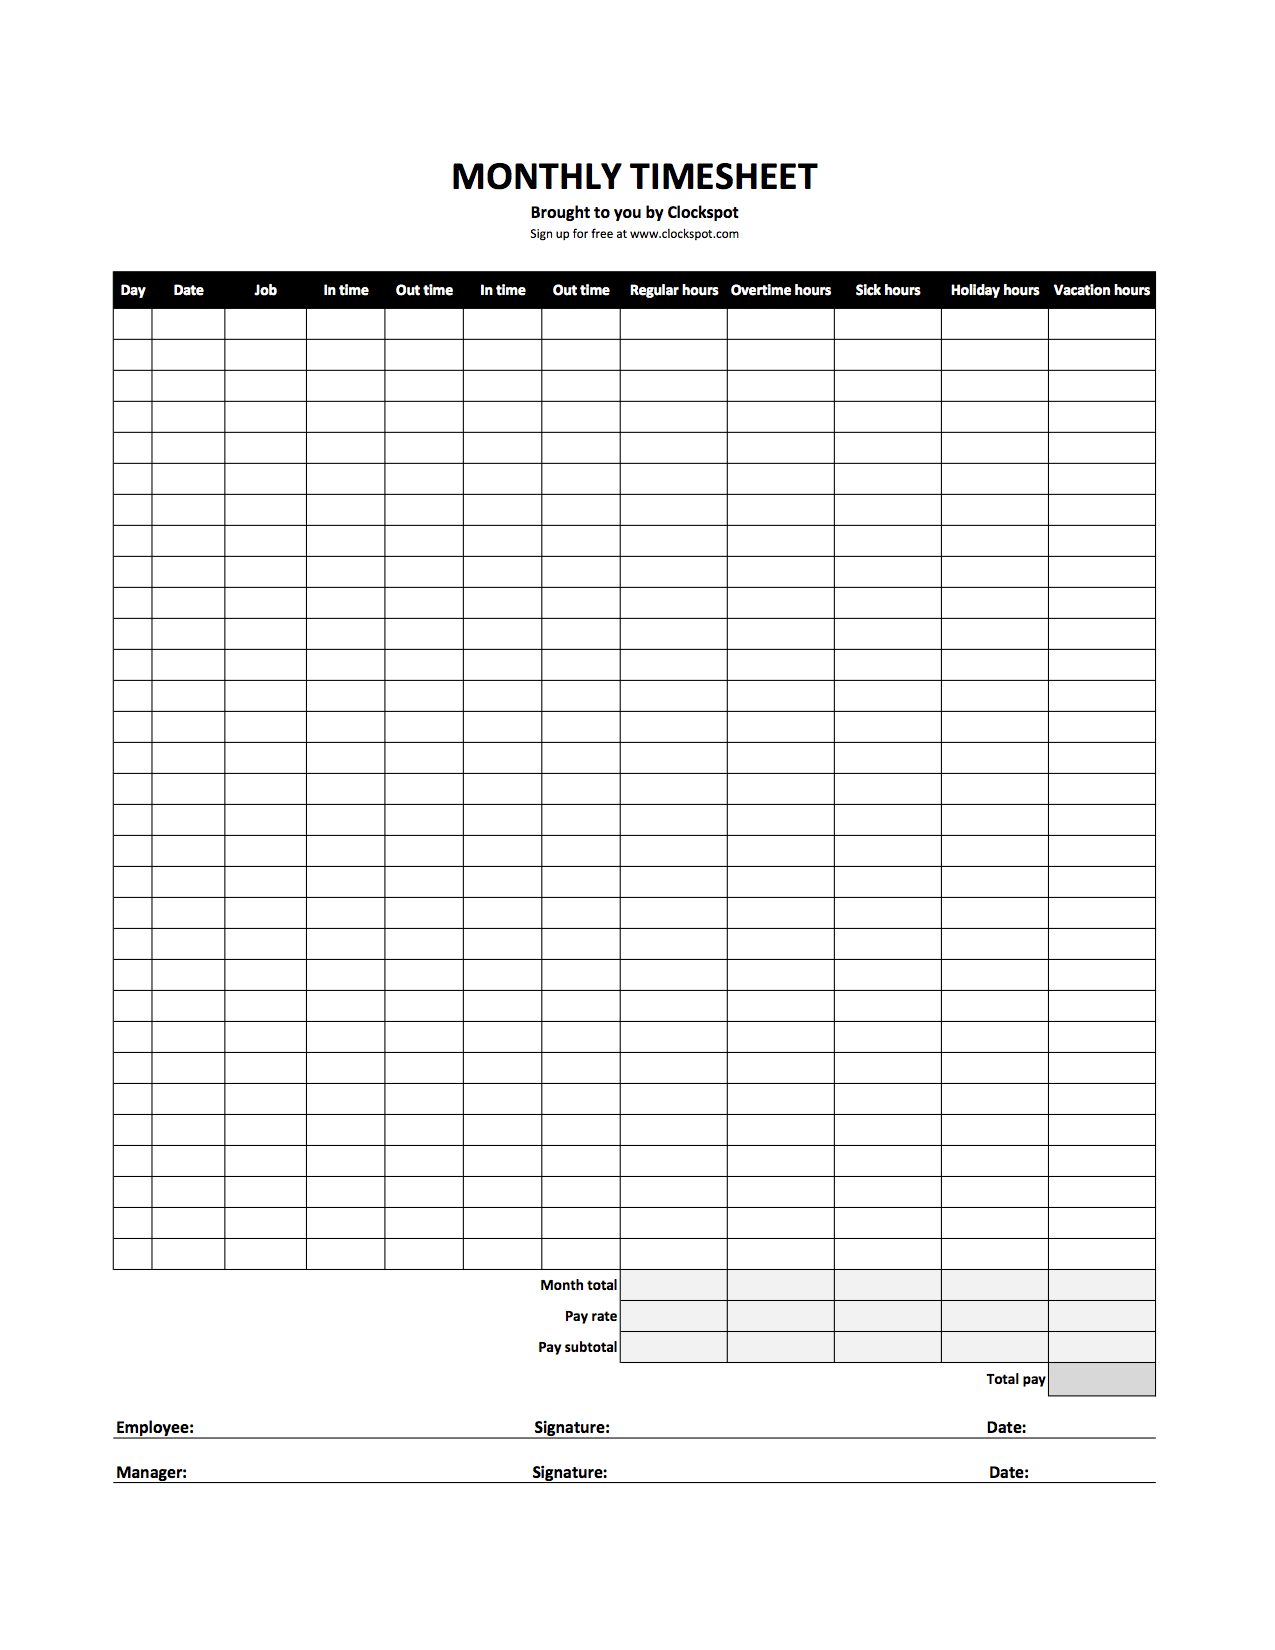 Time Tracking Spreadsheet and Free Time Tracking Spreadsheets Excel Timesheet Templates